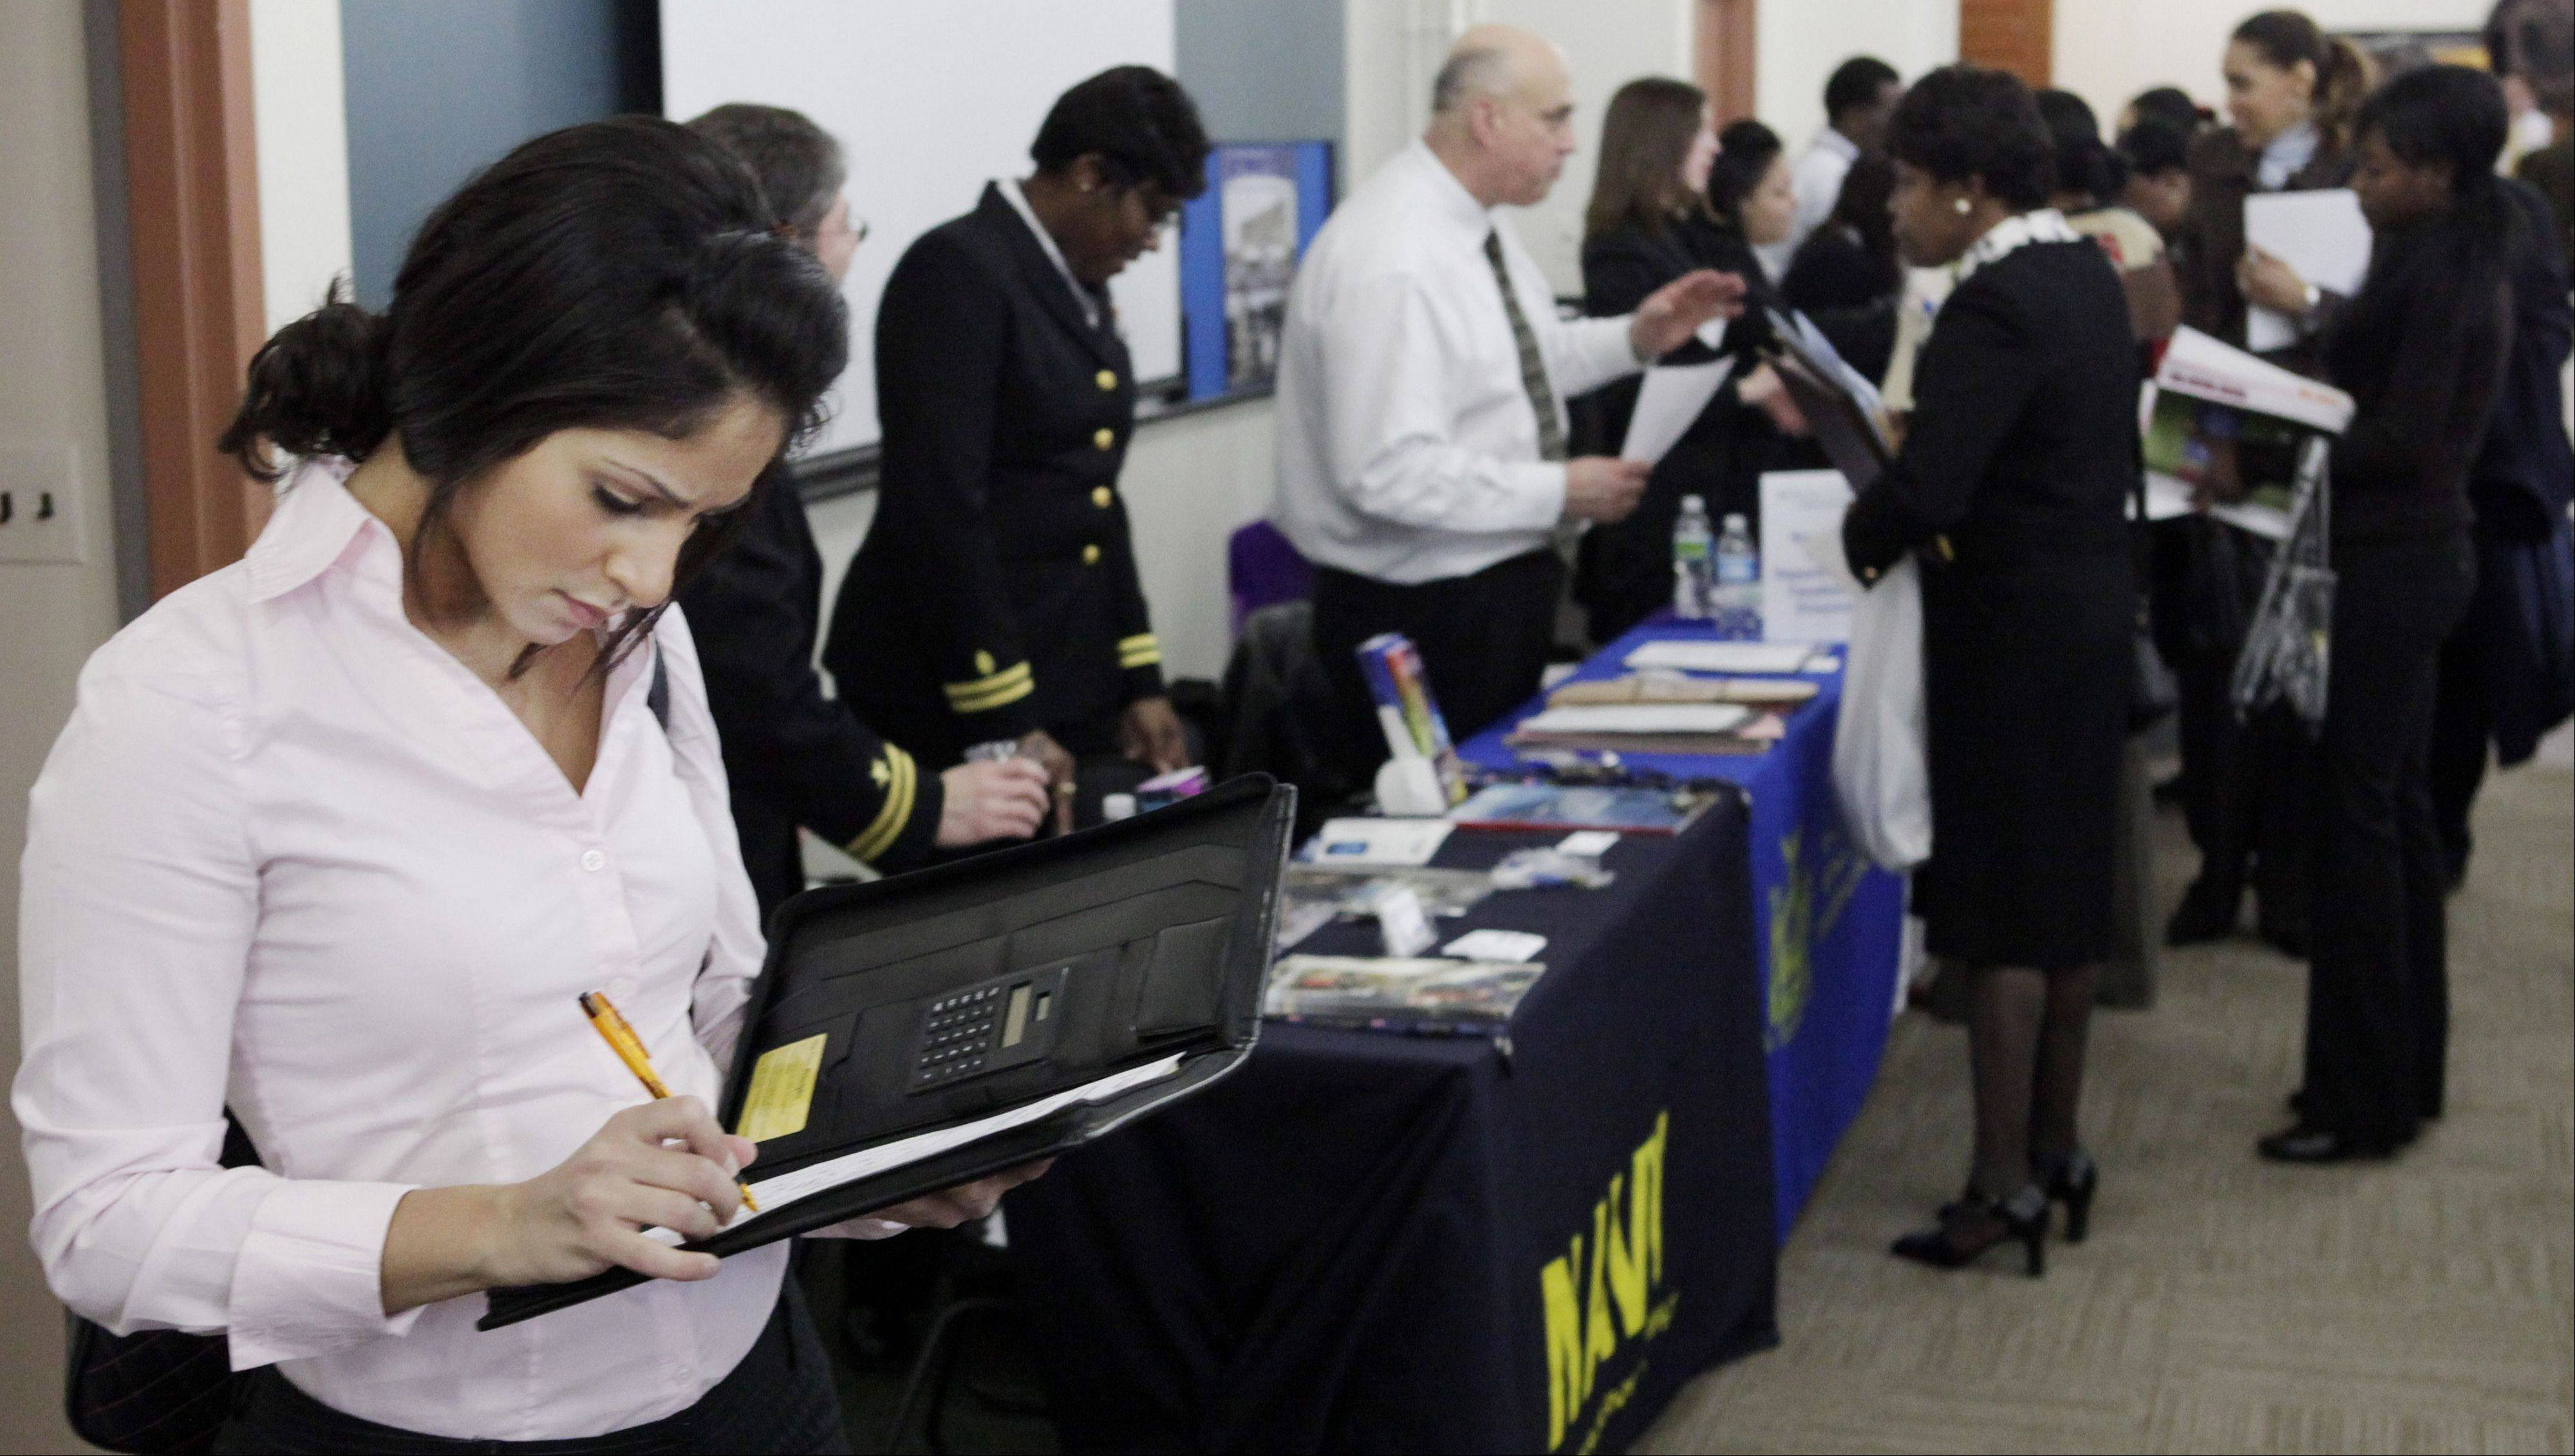 Job seekers at a job fair at Roosevelt University in Chicago. University of Illinois economist Fred Giertz said the state's economy finished the year strong in spite of stubbornly high unemployment.